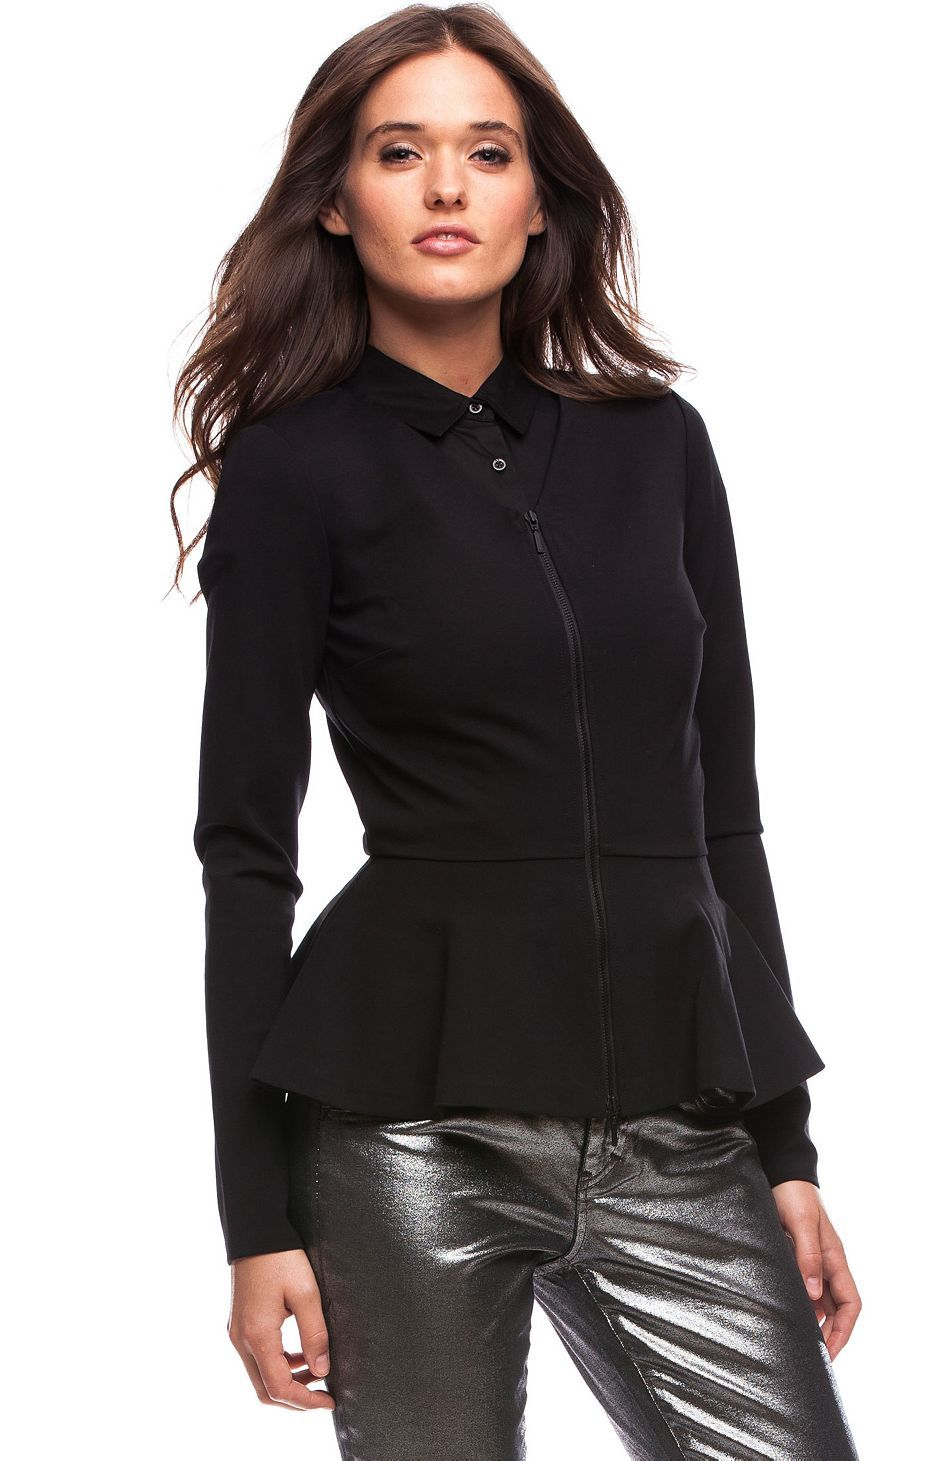 PEPLUM JACKET at Armani Exchange Clothes, Online